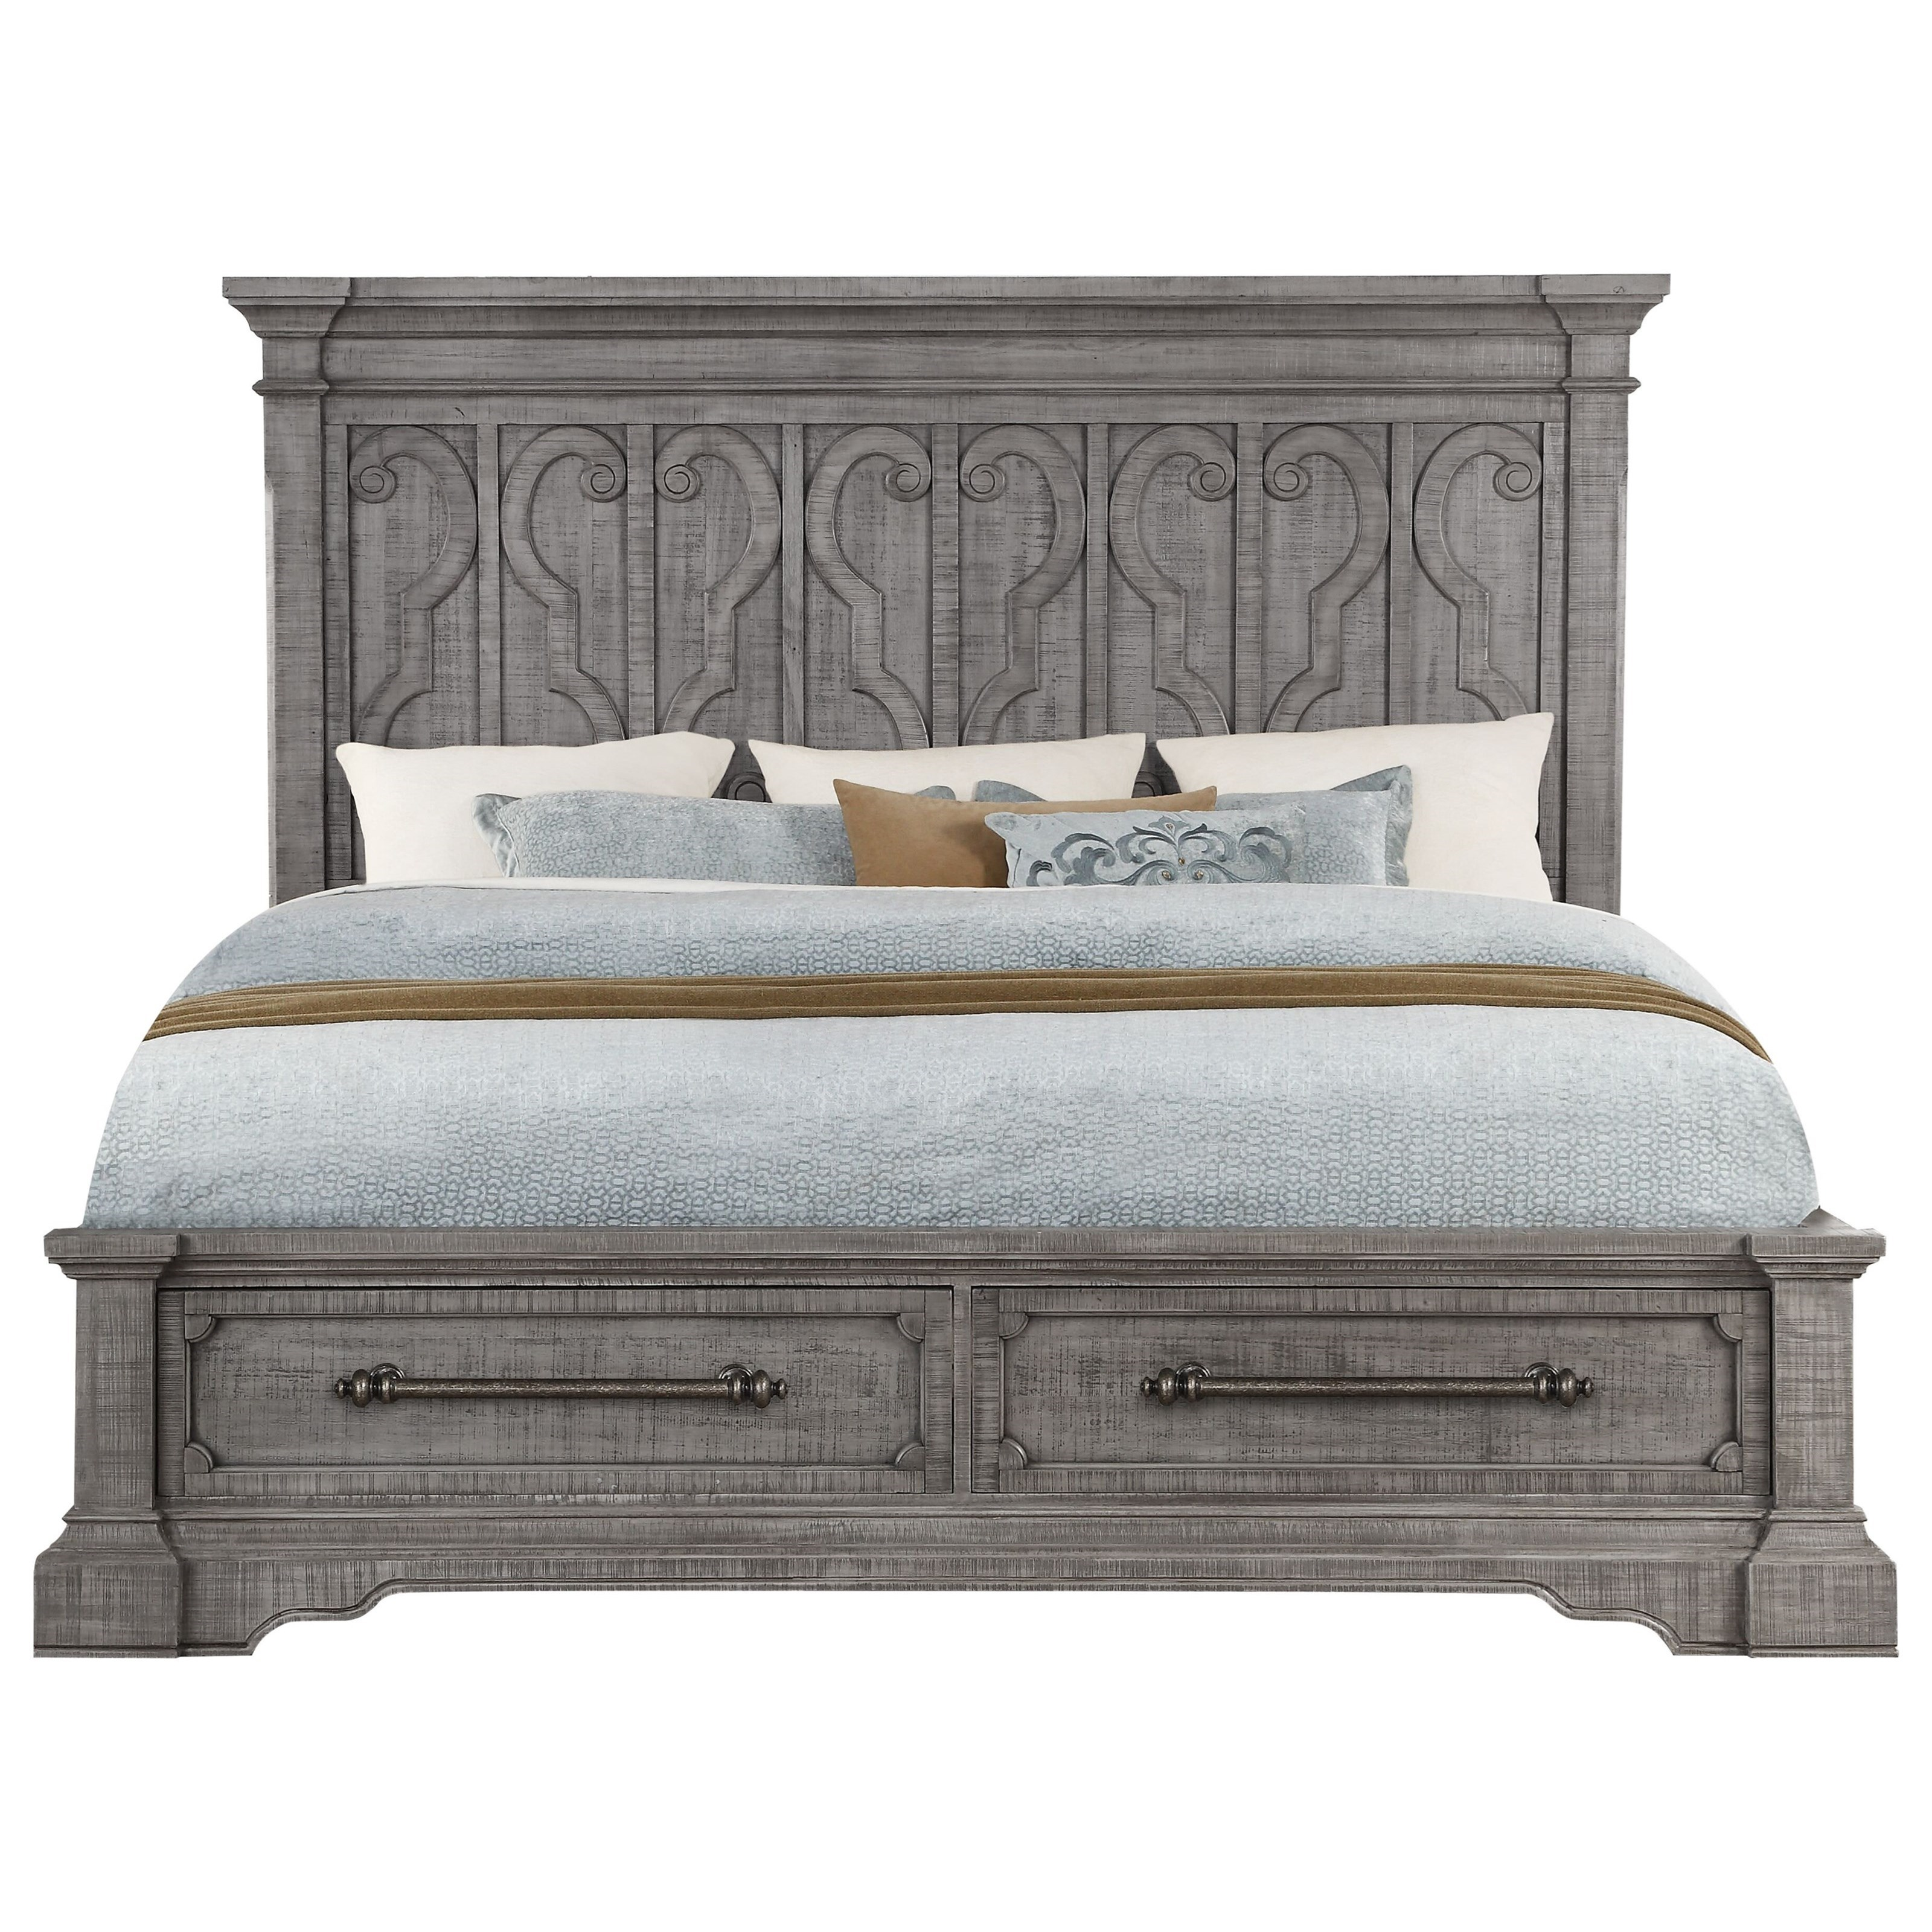 Acme Furniture Artesia California King Bed W Storage Dream Home Interiors Platform Beds Low Profile Beds